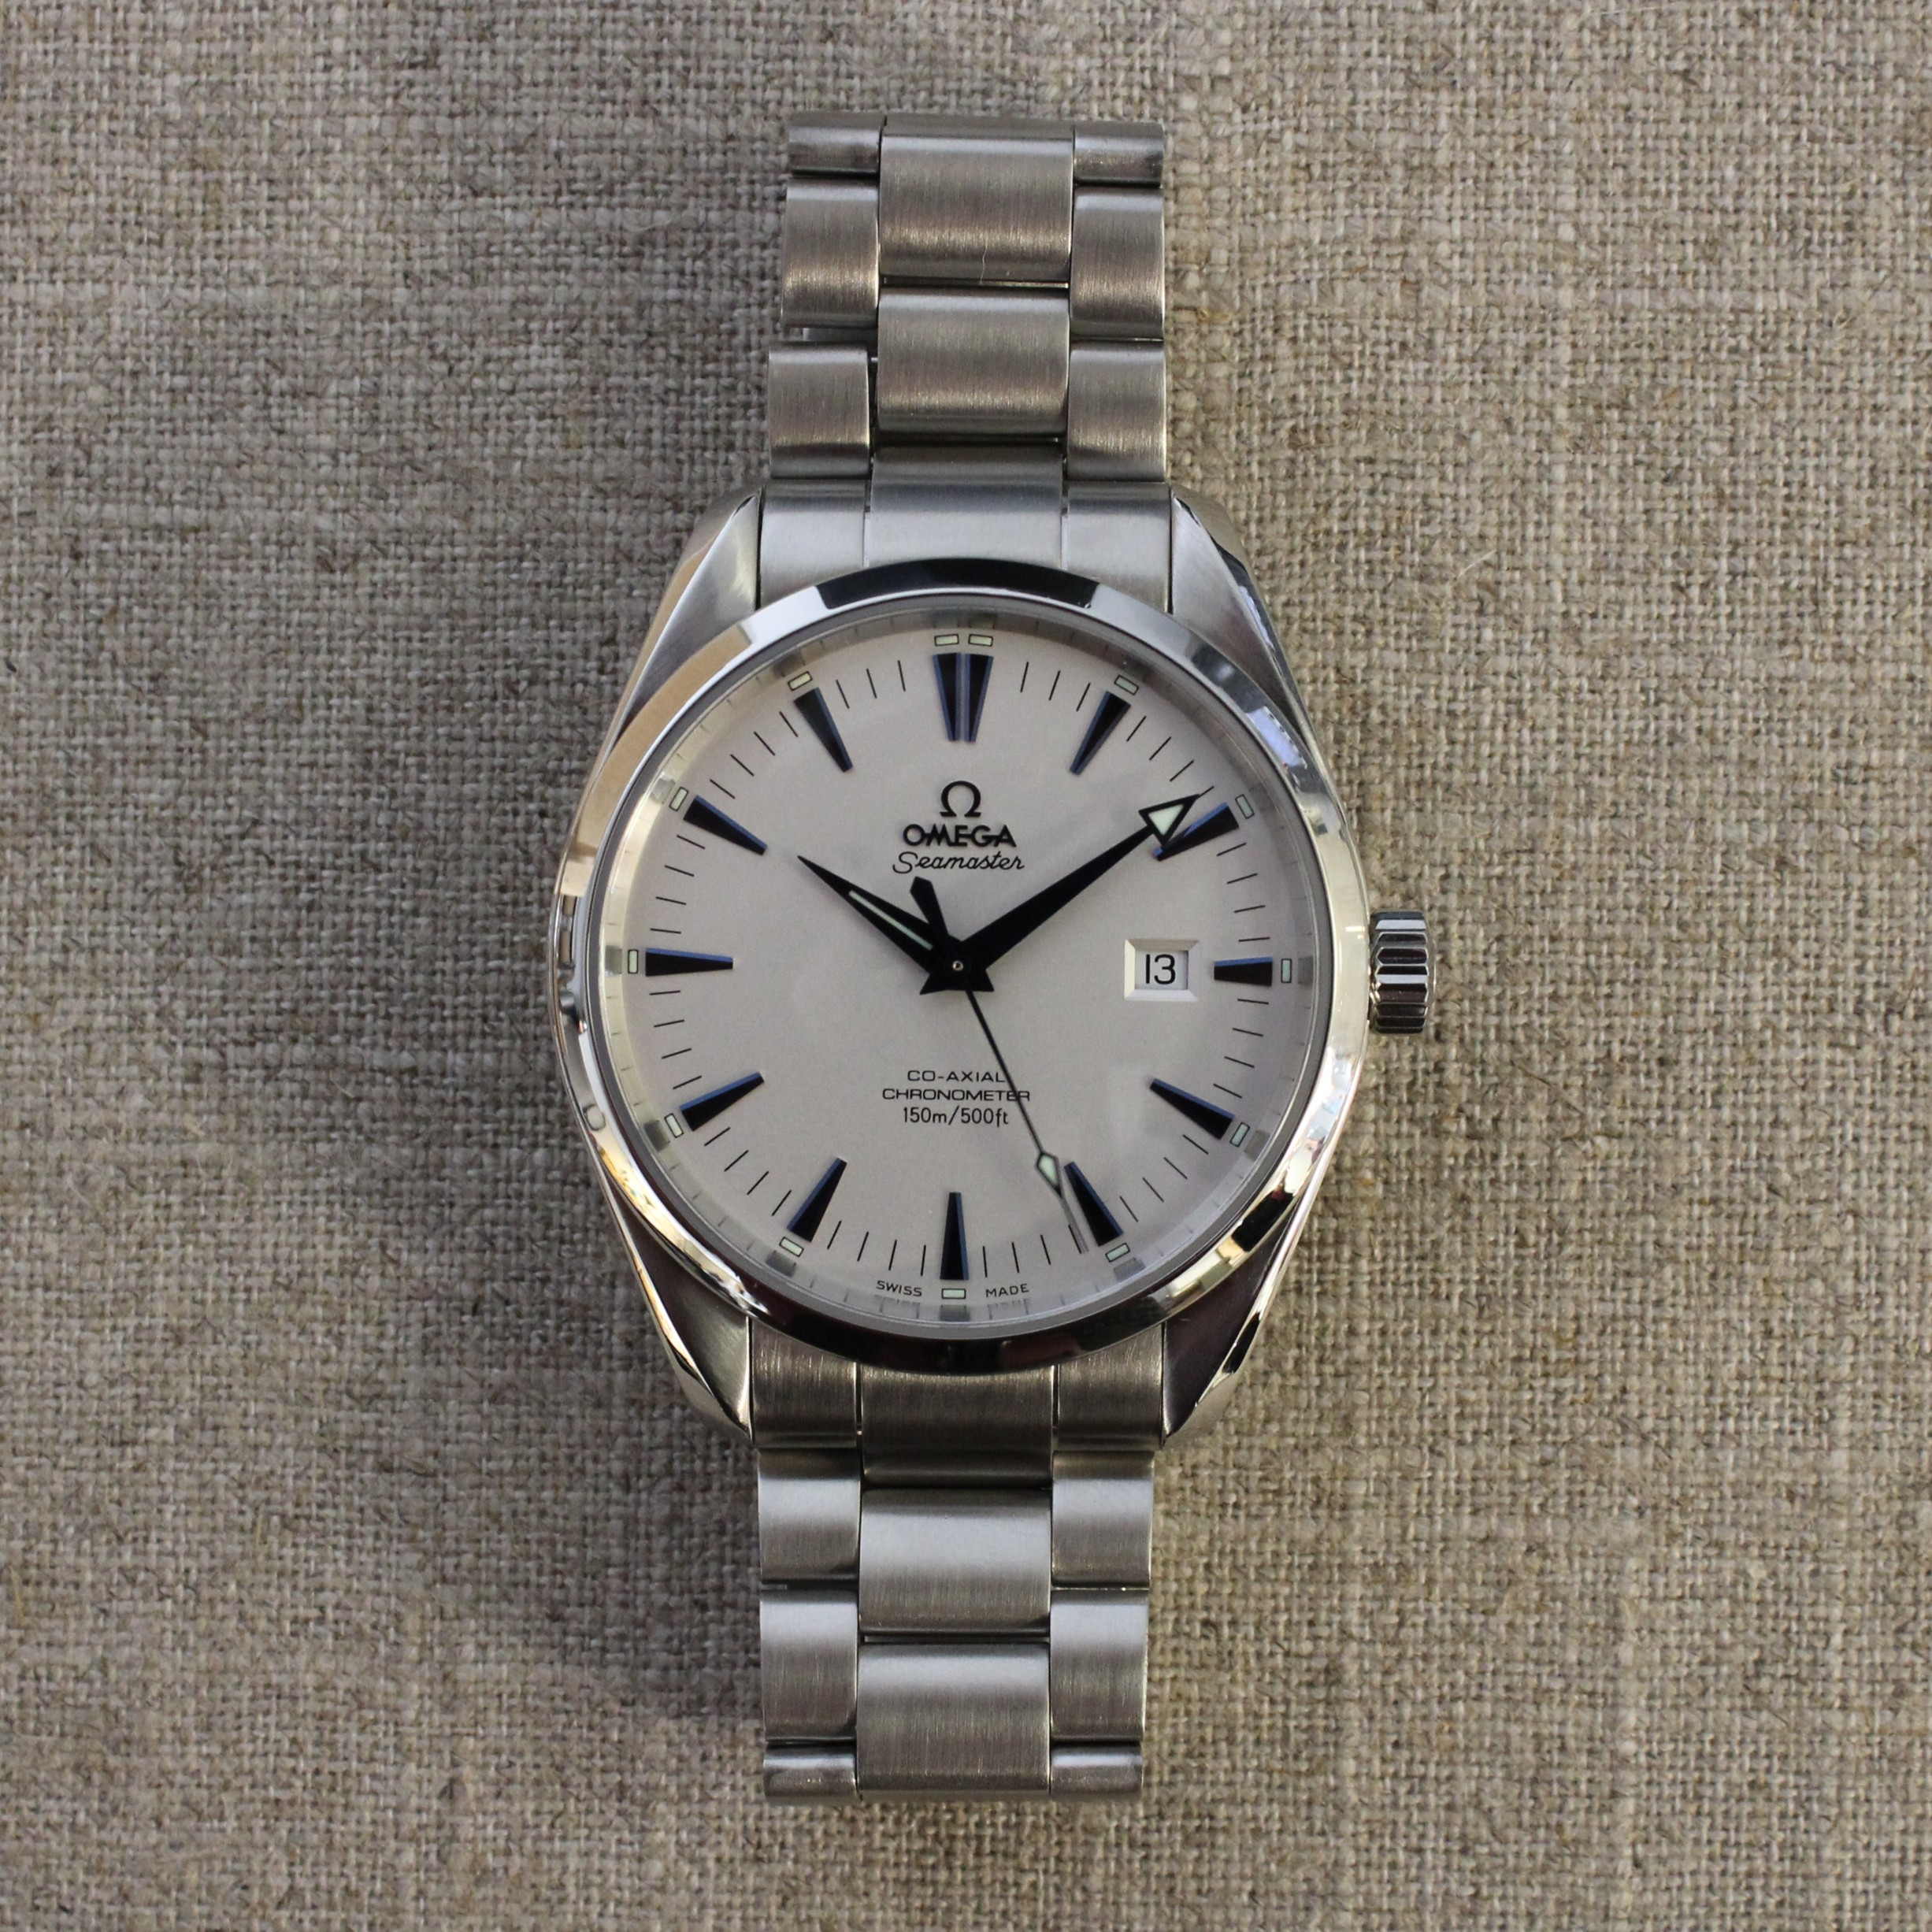 STAINLESS STEEL OMEGA SEAMASTER 42MM MODEL NO. 2802.33.37